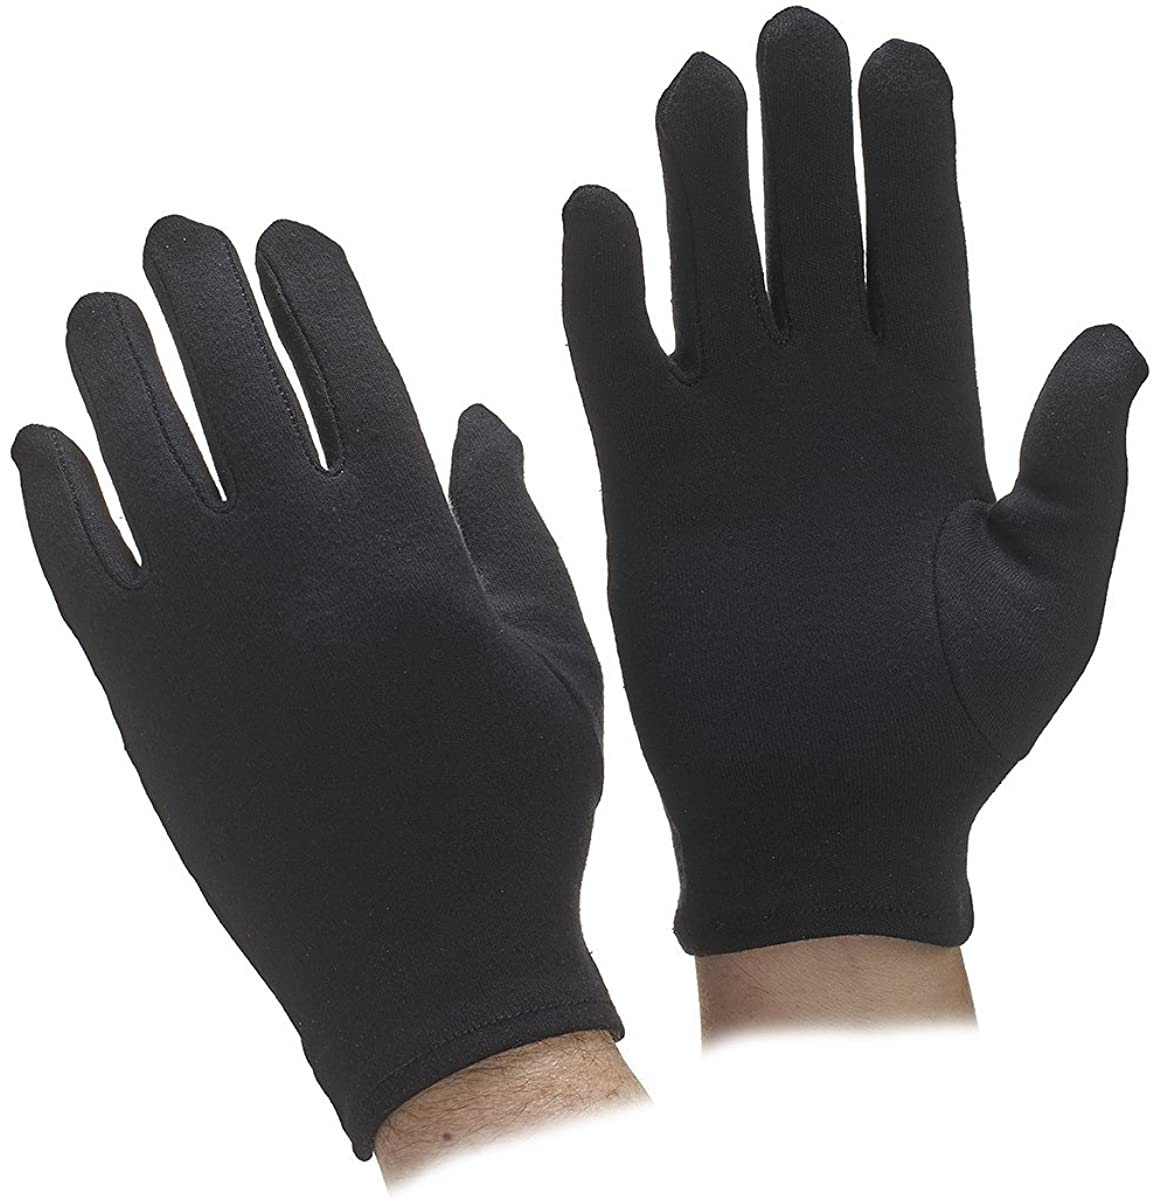 Go Gloves Cotton Parade Gloves, Black, Small, (Pack of 1 Pair)